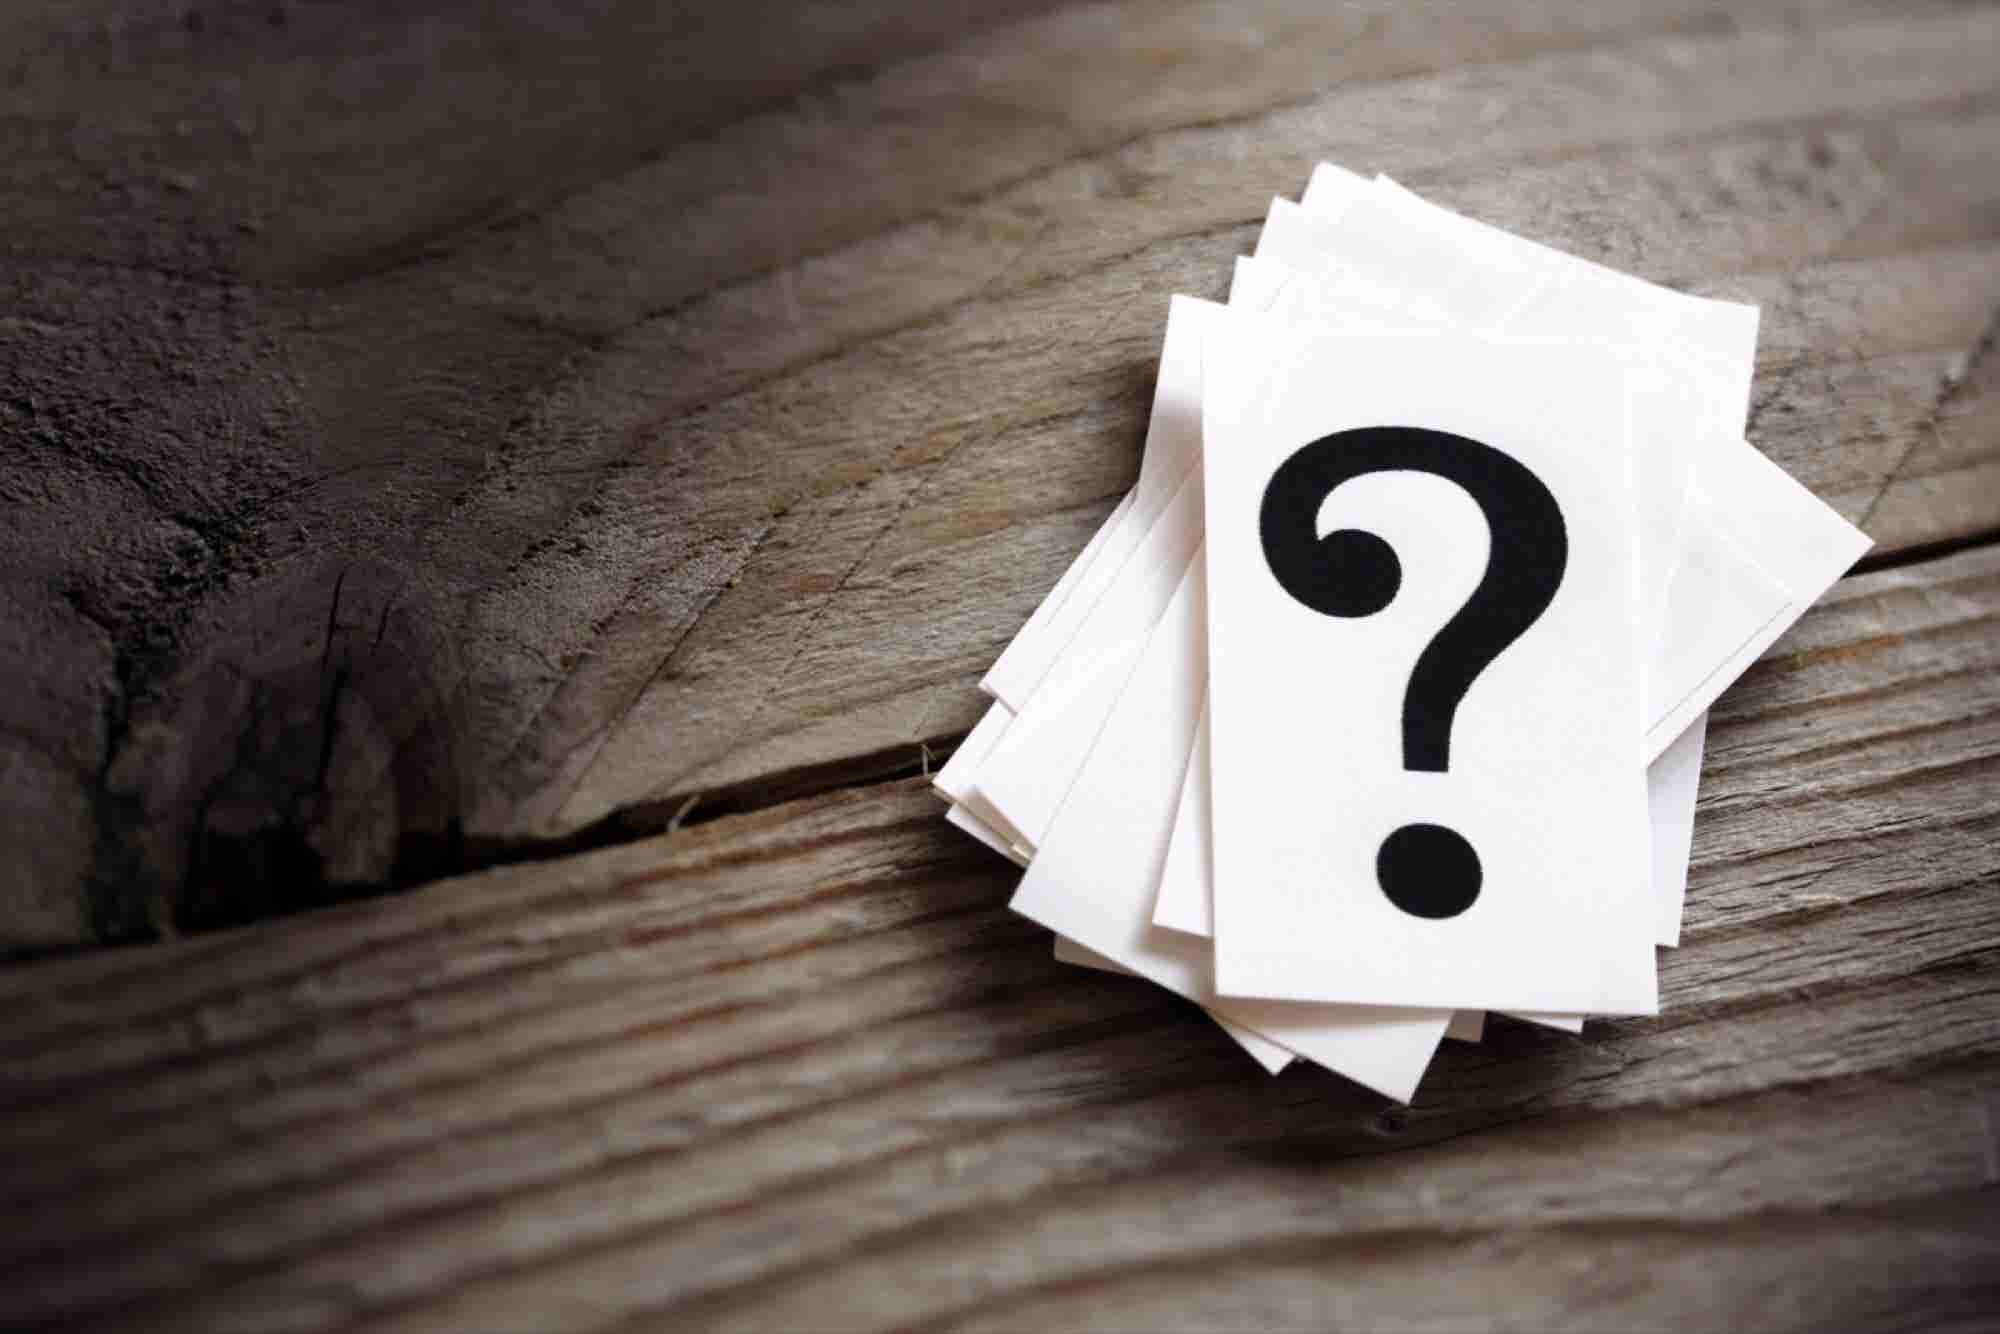 5 Questions to Help You Find Out Why You Really Want to Be an Entrepreneur